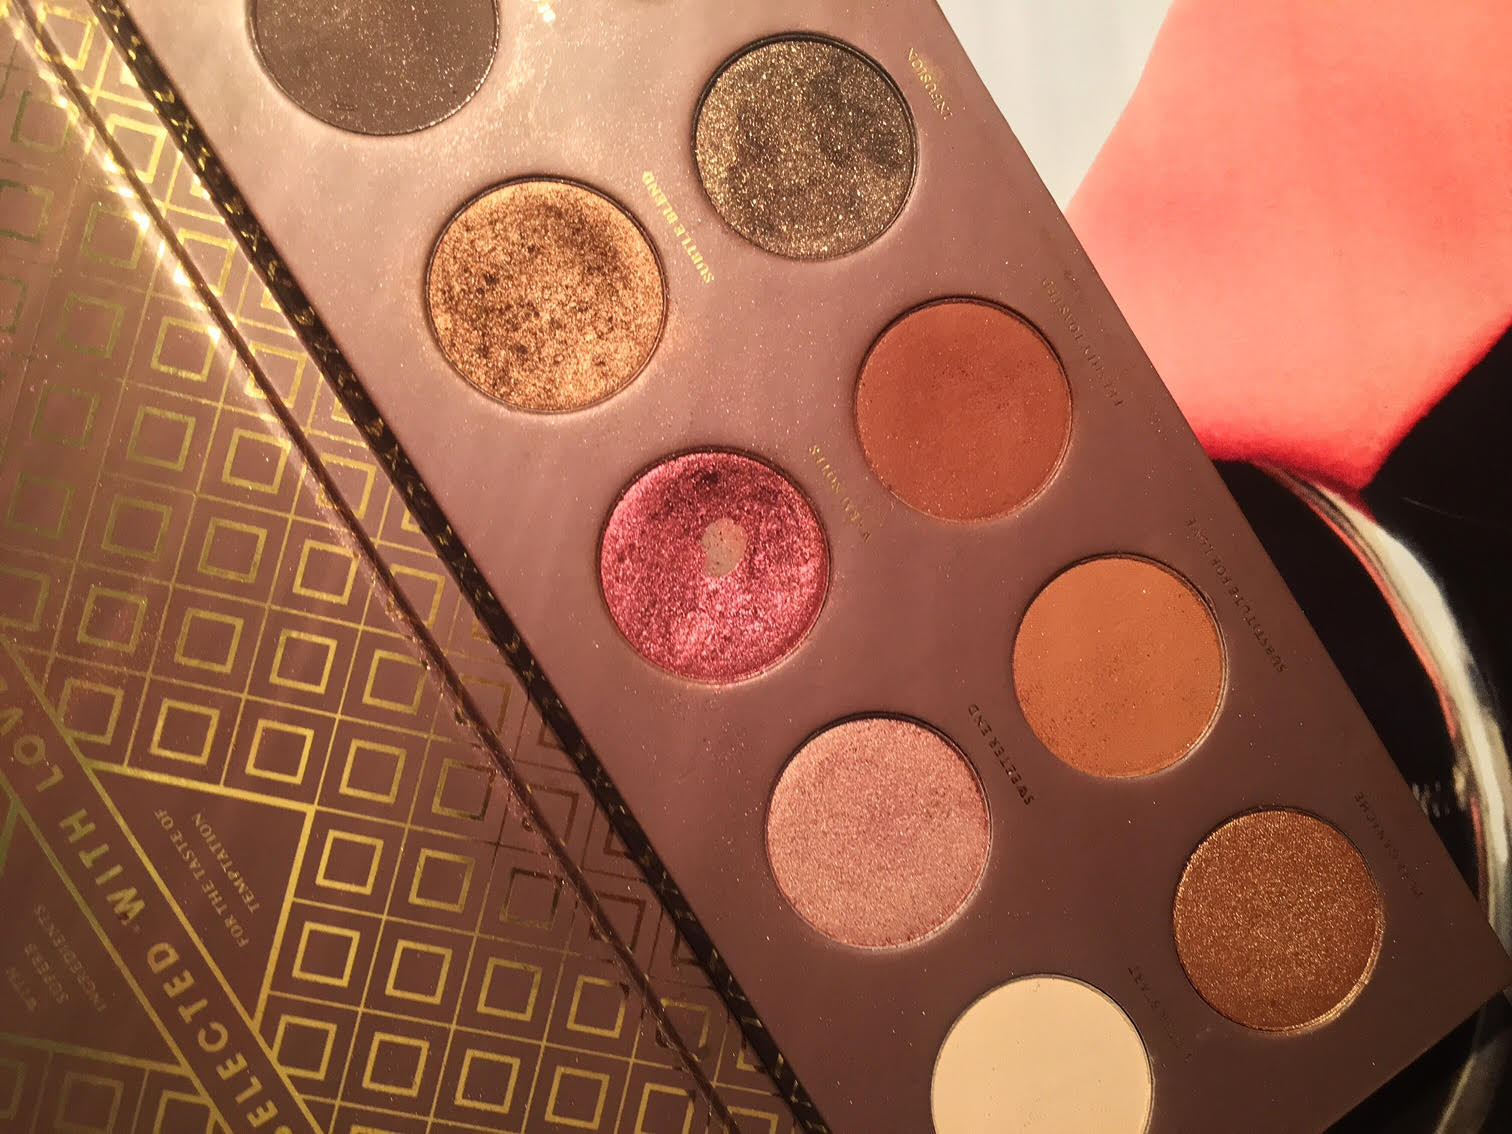 zoeva-cocoa-blend-eyeshadow-palette-review